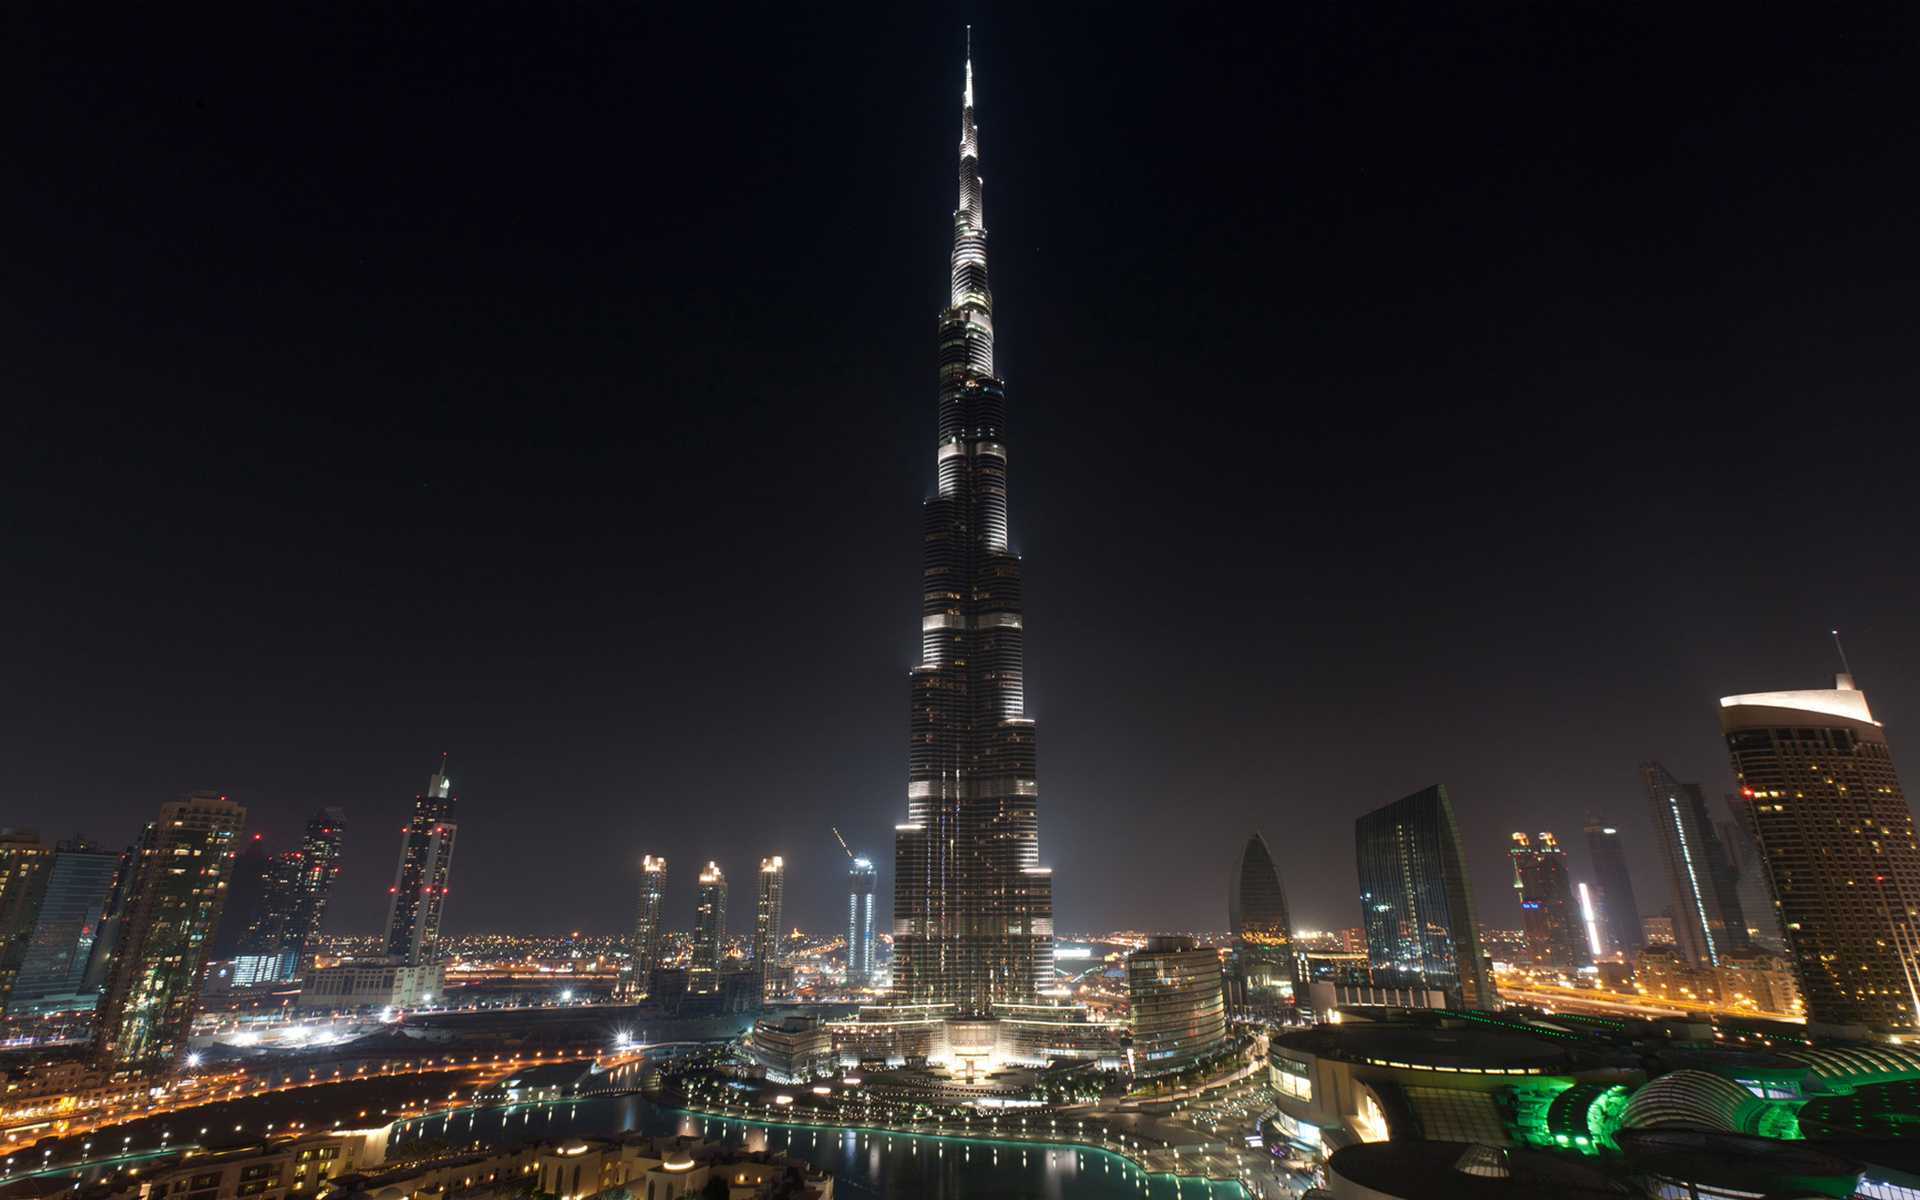 burj khalifa at night with other buildings